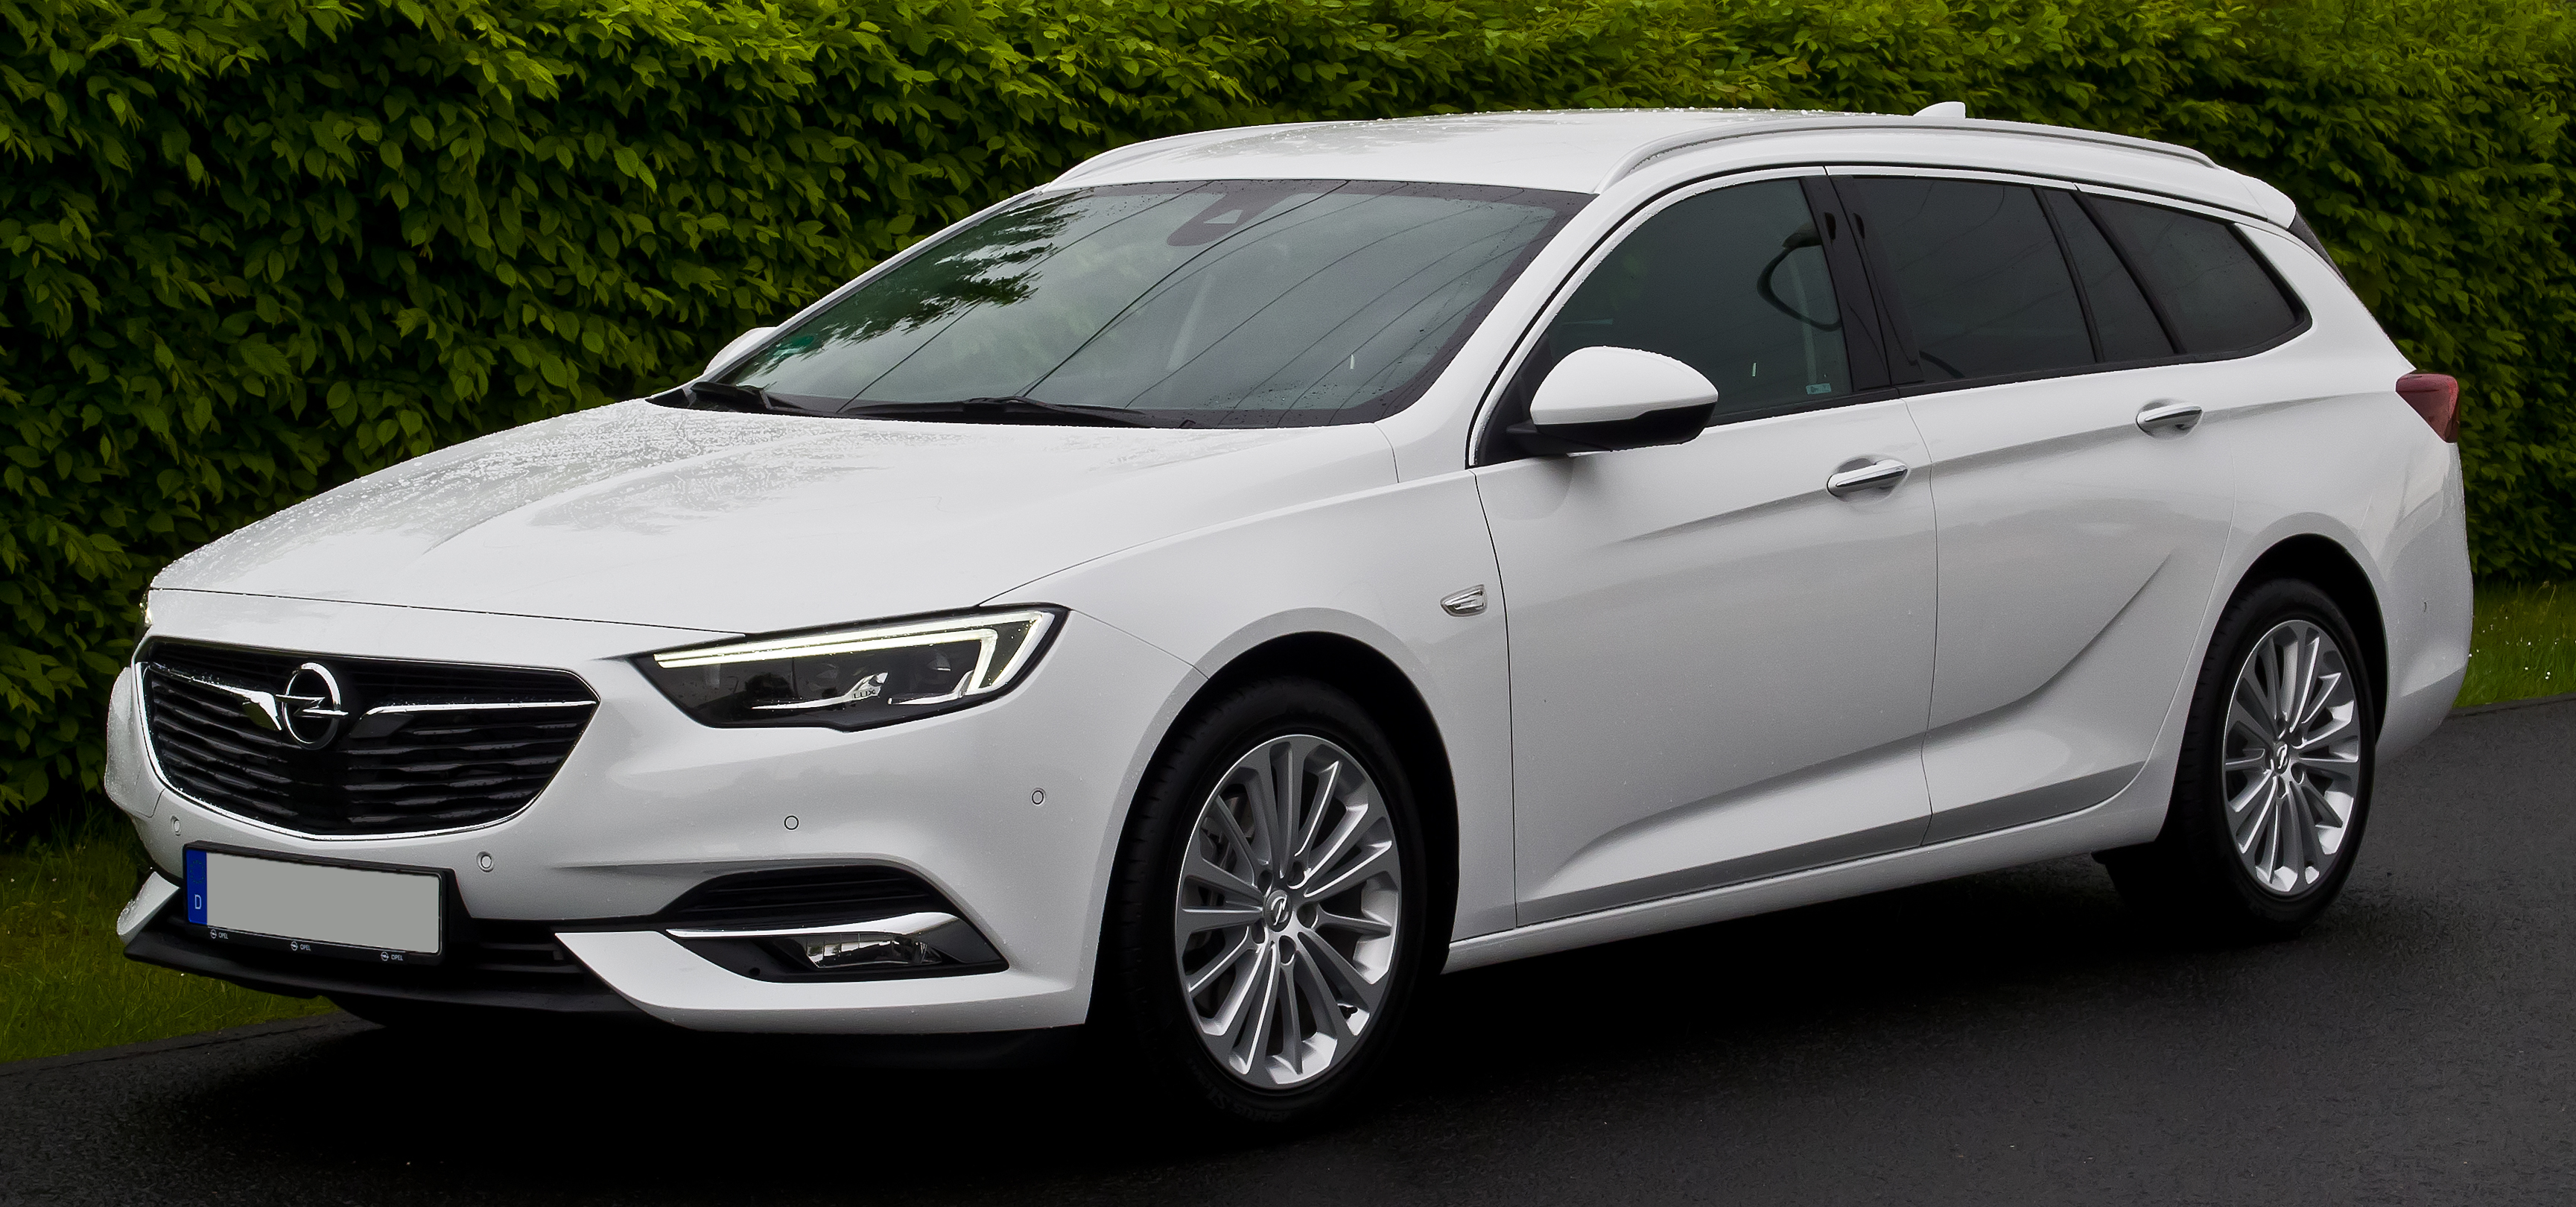 File:Opel Insignia Sports Tourer 1.5 DIT Innovation (B ...